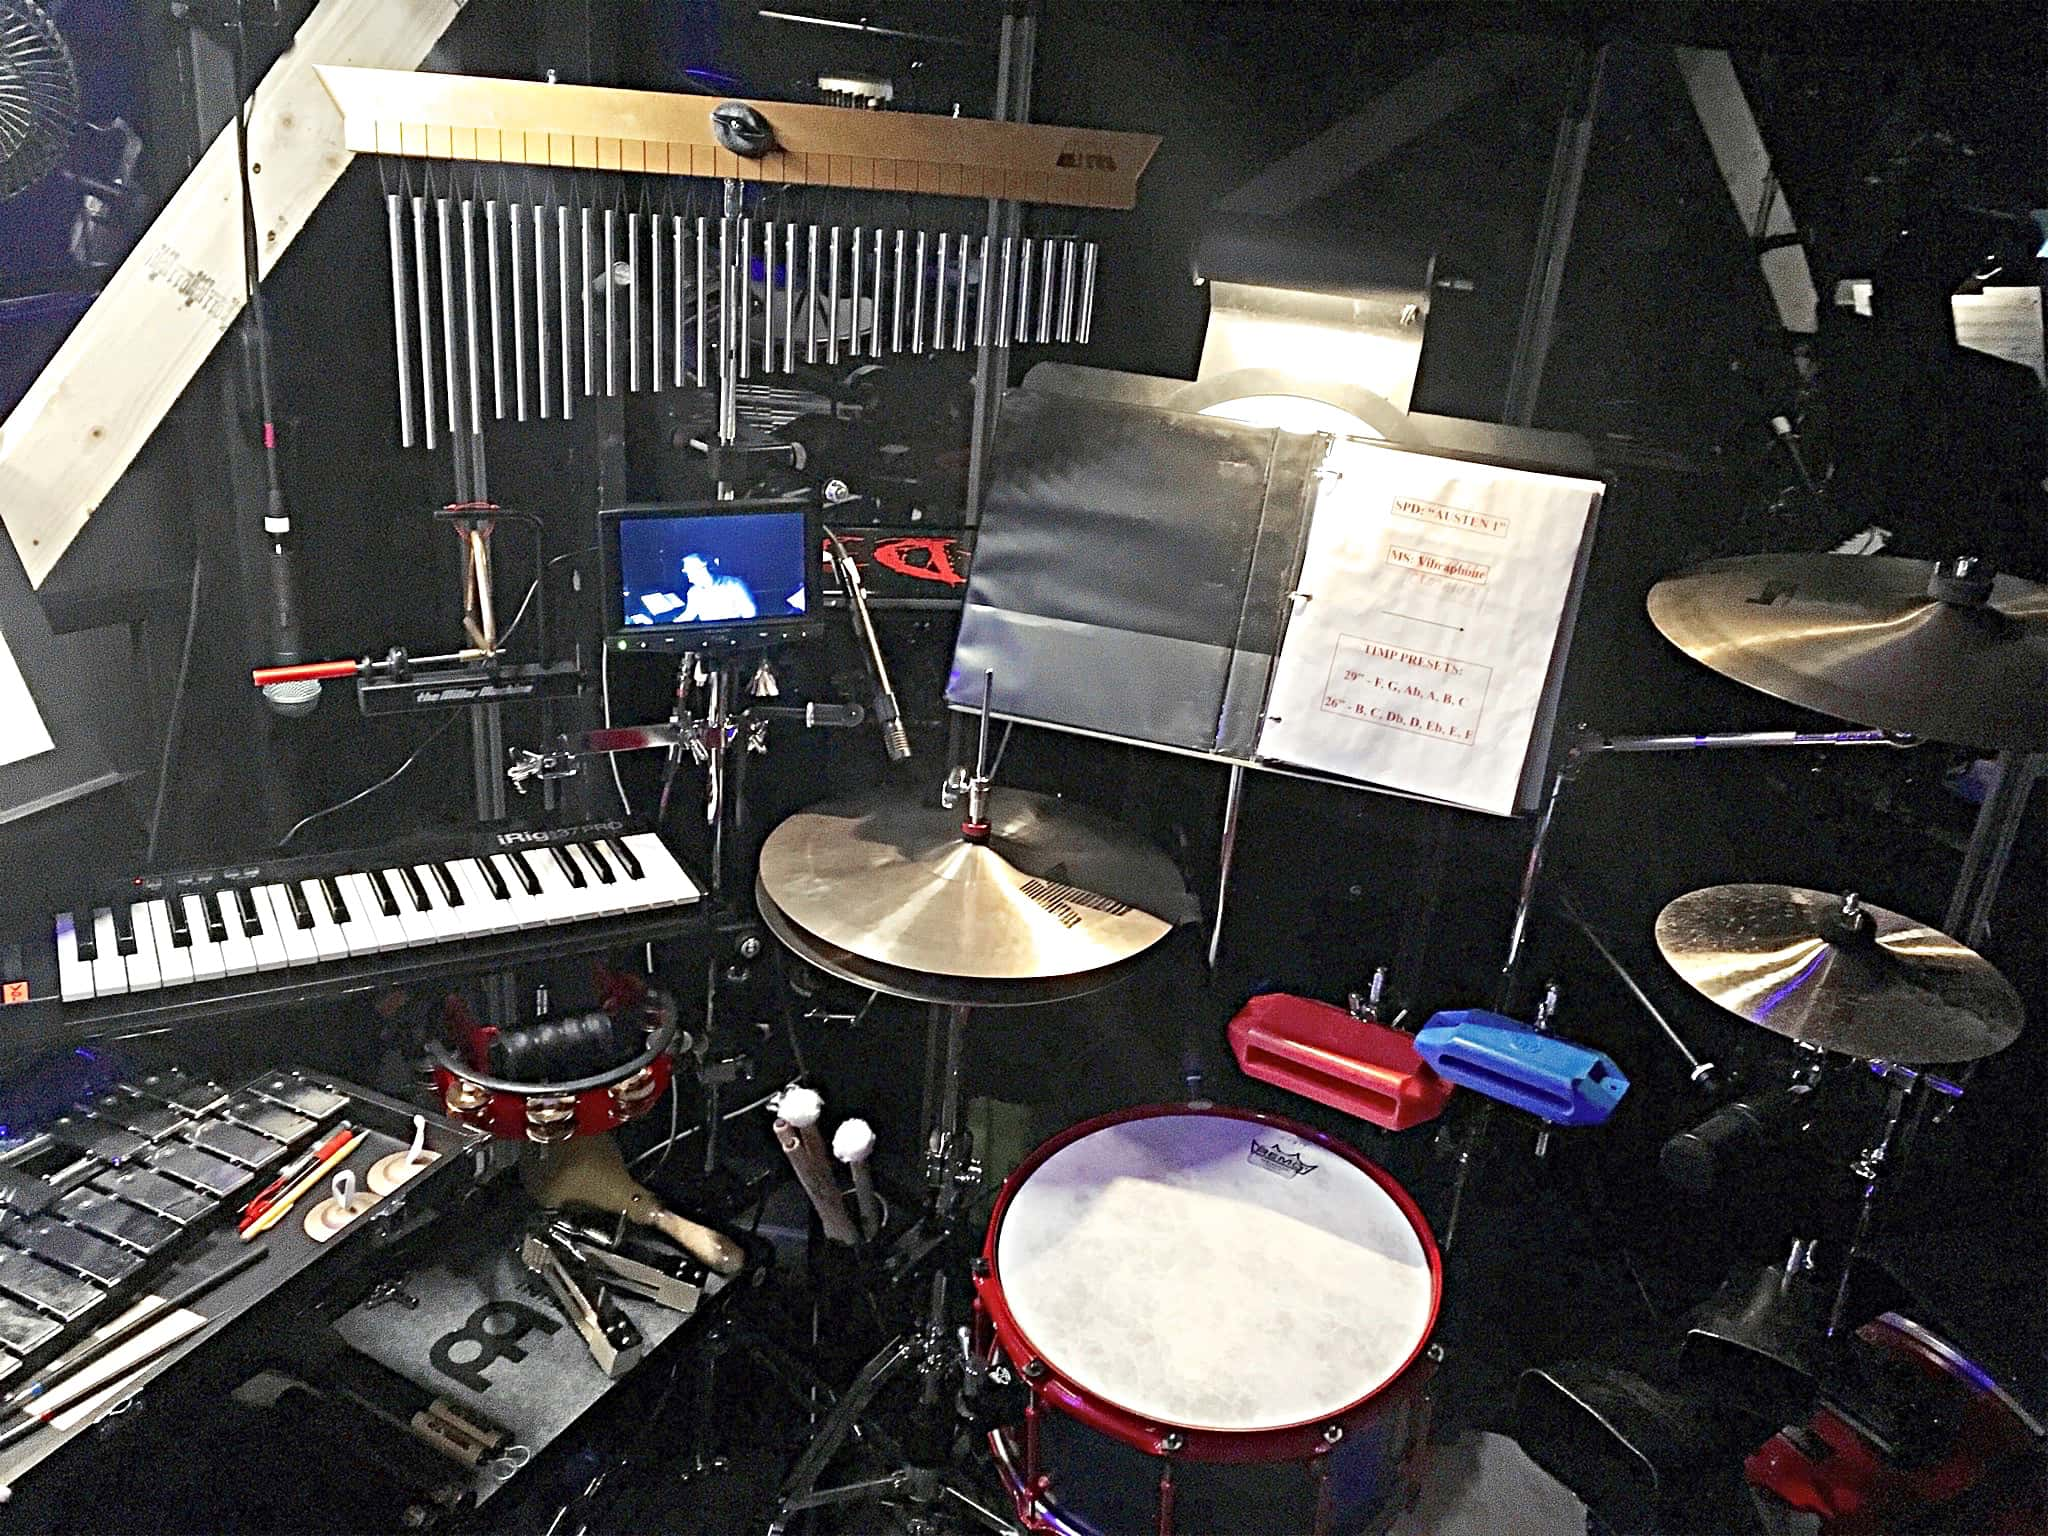 Dennis J Arcano's setup for Austen's Pride, a new musical of Pride and Prejudice at ACT in Ridgefield, Connecticut.